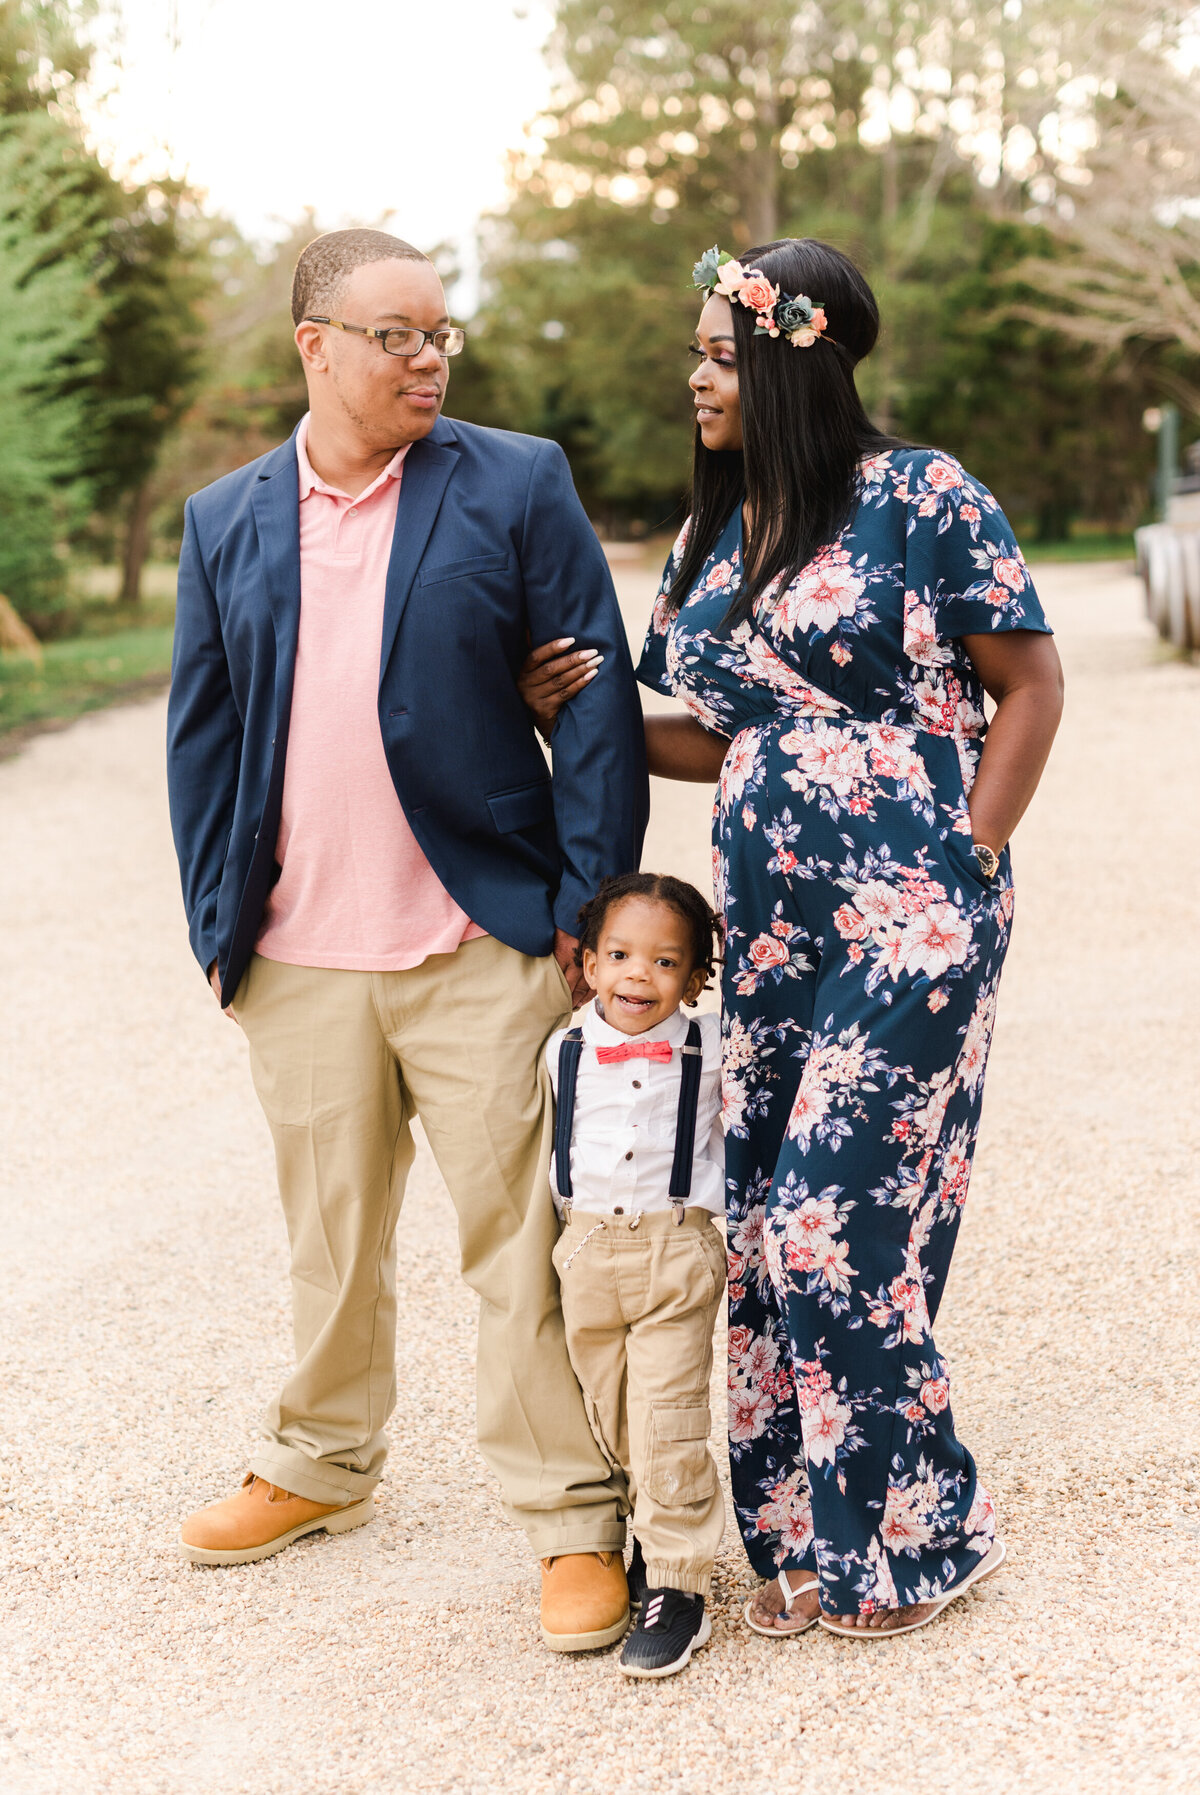 family-photographer-virginia-beach-tonya-volk-photography-52